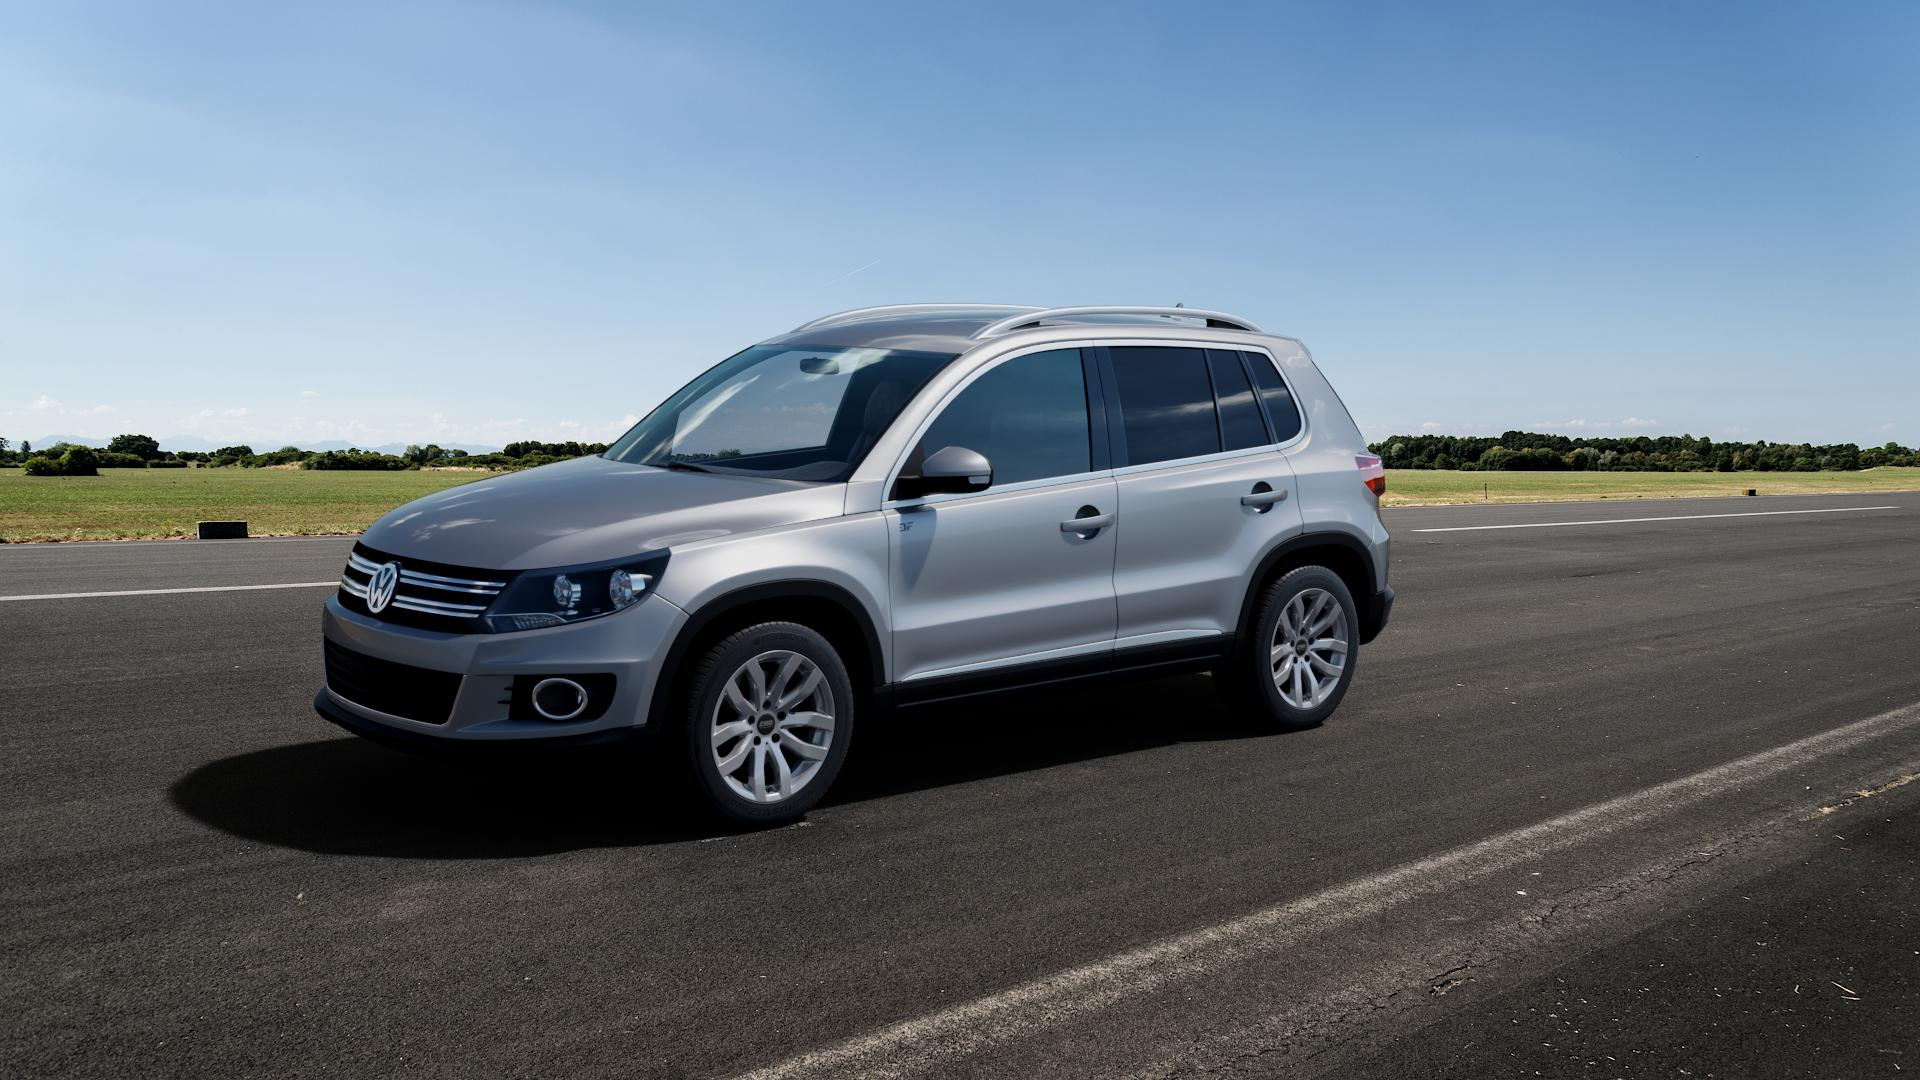 CMS C22 Racing Silver Felge mit Reifen silber in 17Zoll Winterfelge Alufelge auf silbernem Volkswagen (VW) Tiguan I Typ 5N 2,0l TDI 103kW (140 PS) 4Motion 1,4l TSI 118kW (160 155kW (211 132kW (179 81kW (110 120kW (163 100kW (136 130kW (177 92kW (125 110kW (150 135kW (184 ⬇️ mit 15mm Tieferlegung ⬇️ Big_Vehicle_Airstrip_1 Frontansi